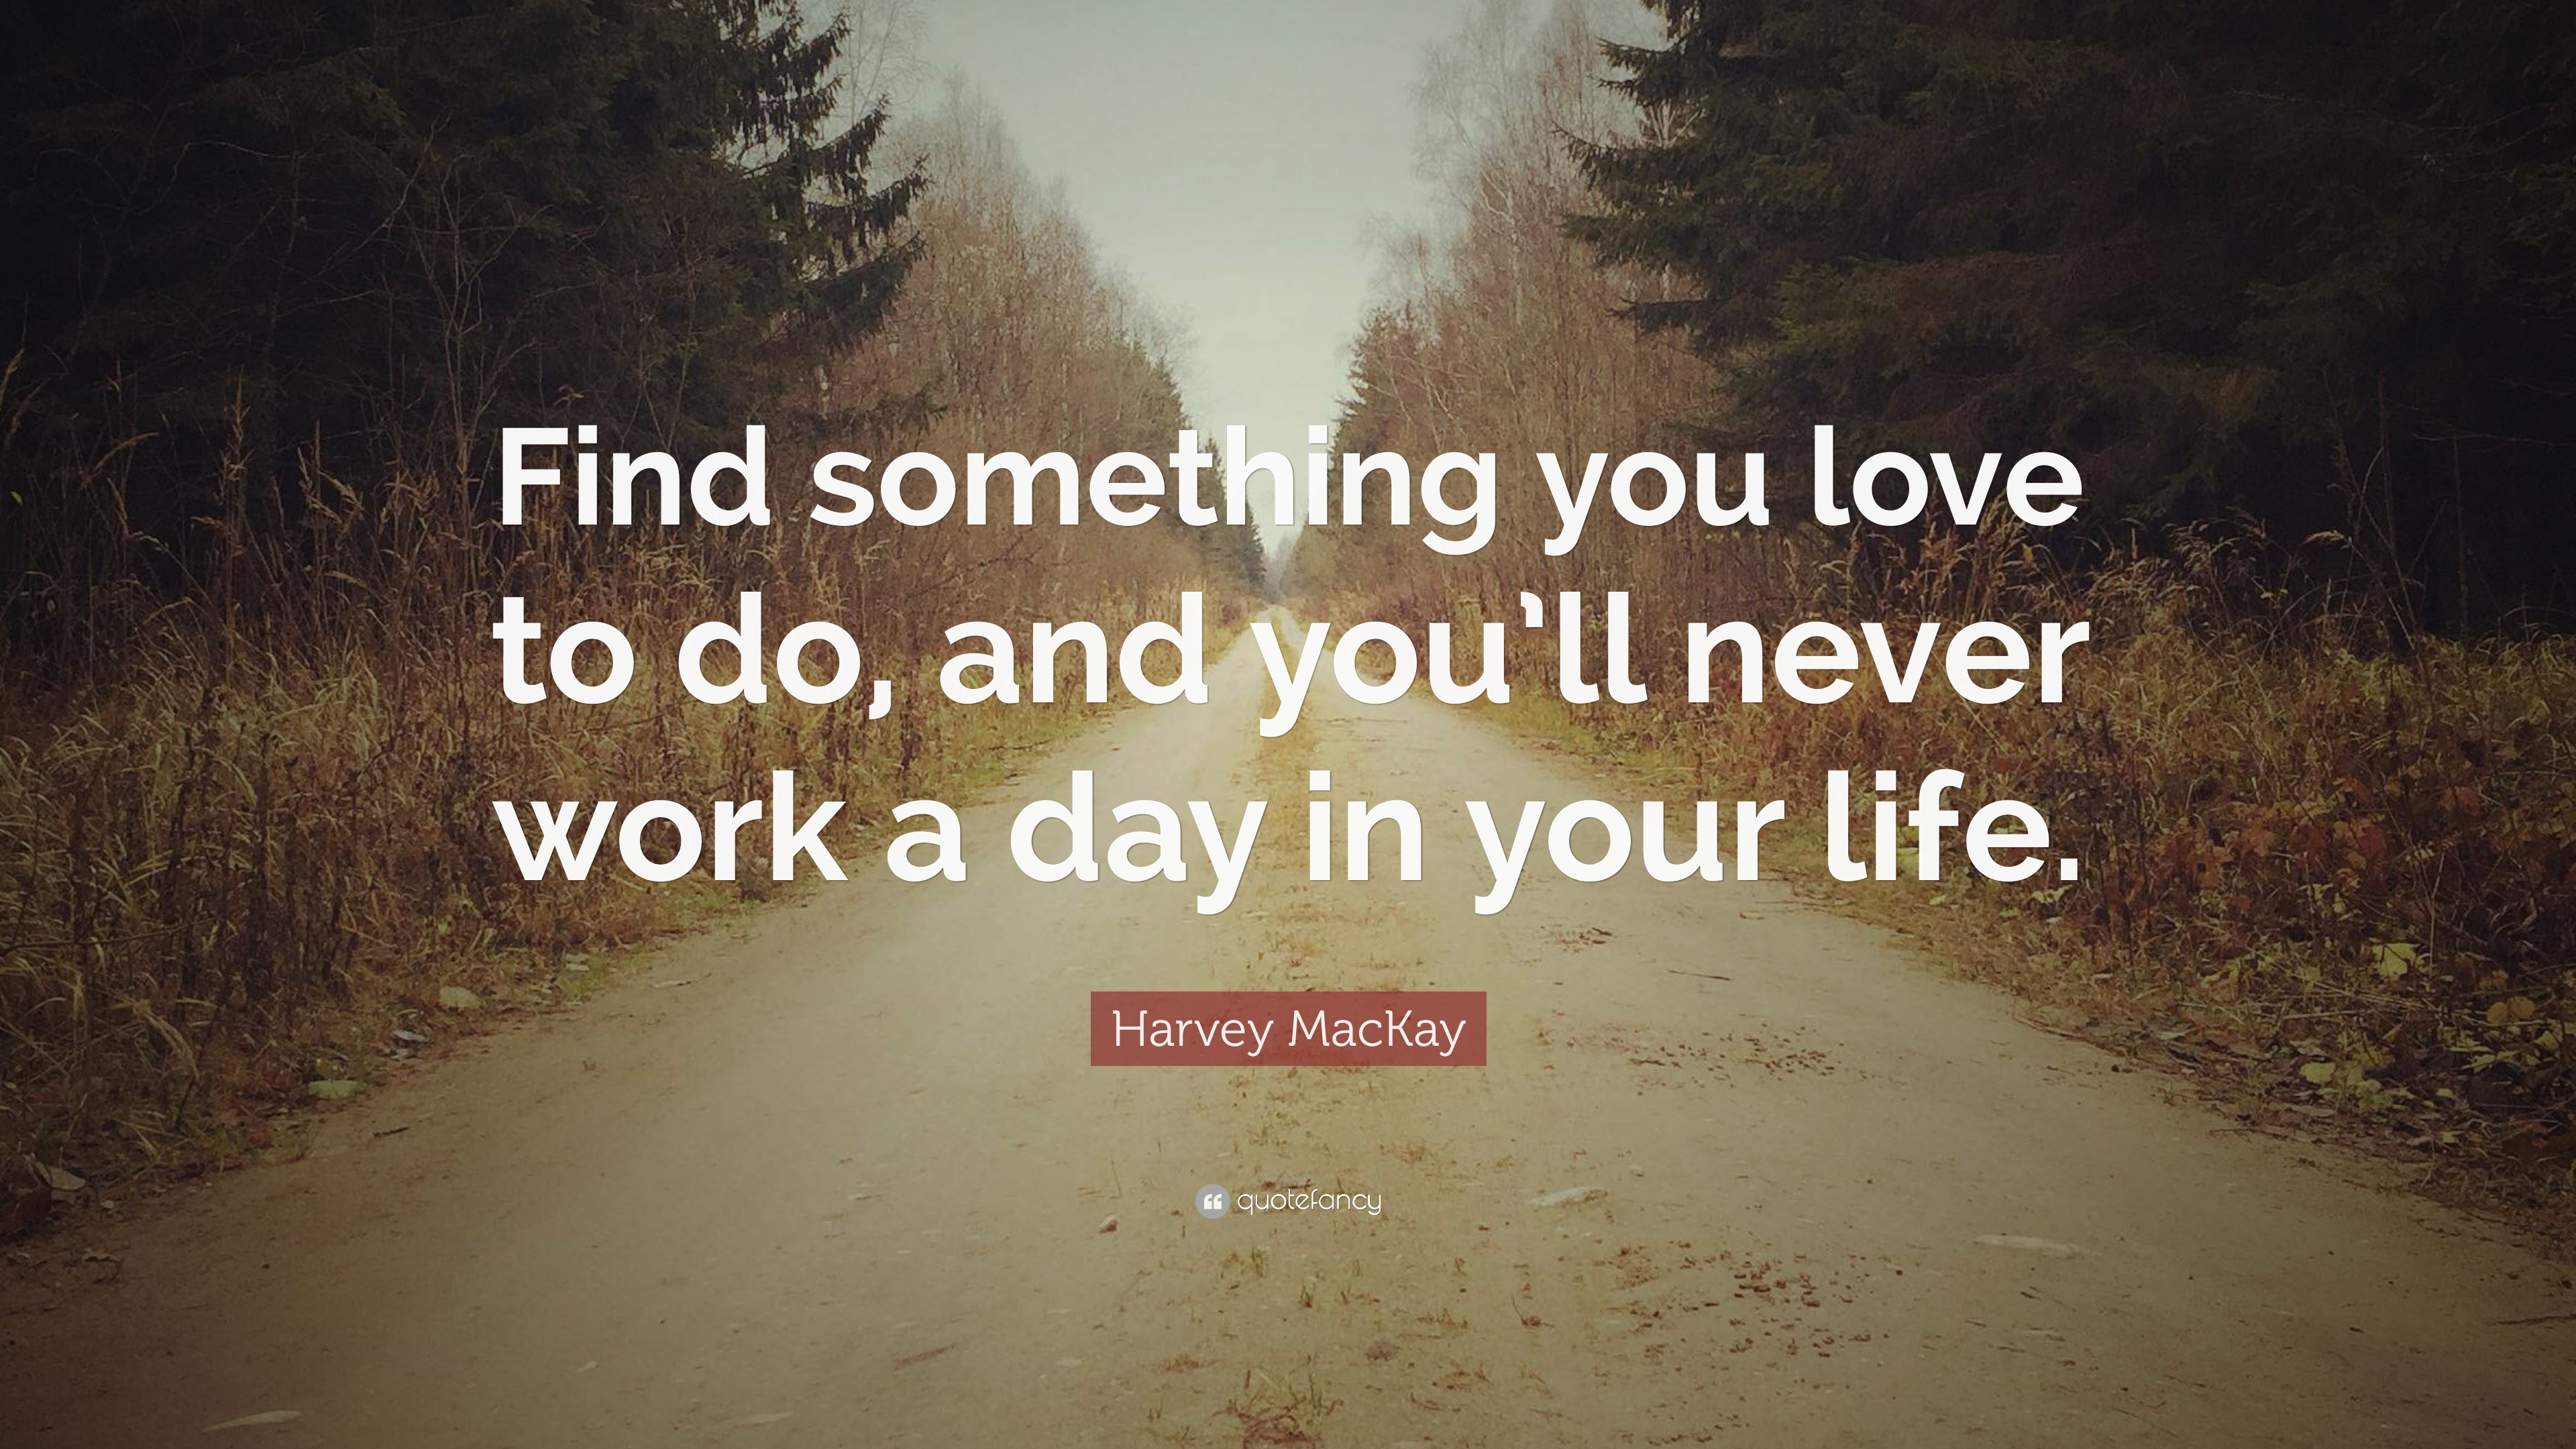 """Harvey MacKay Quote: """"Find something you love to do. and you'll never work a day in your life."""" (12 wallpapers) - Quotefancy"""